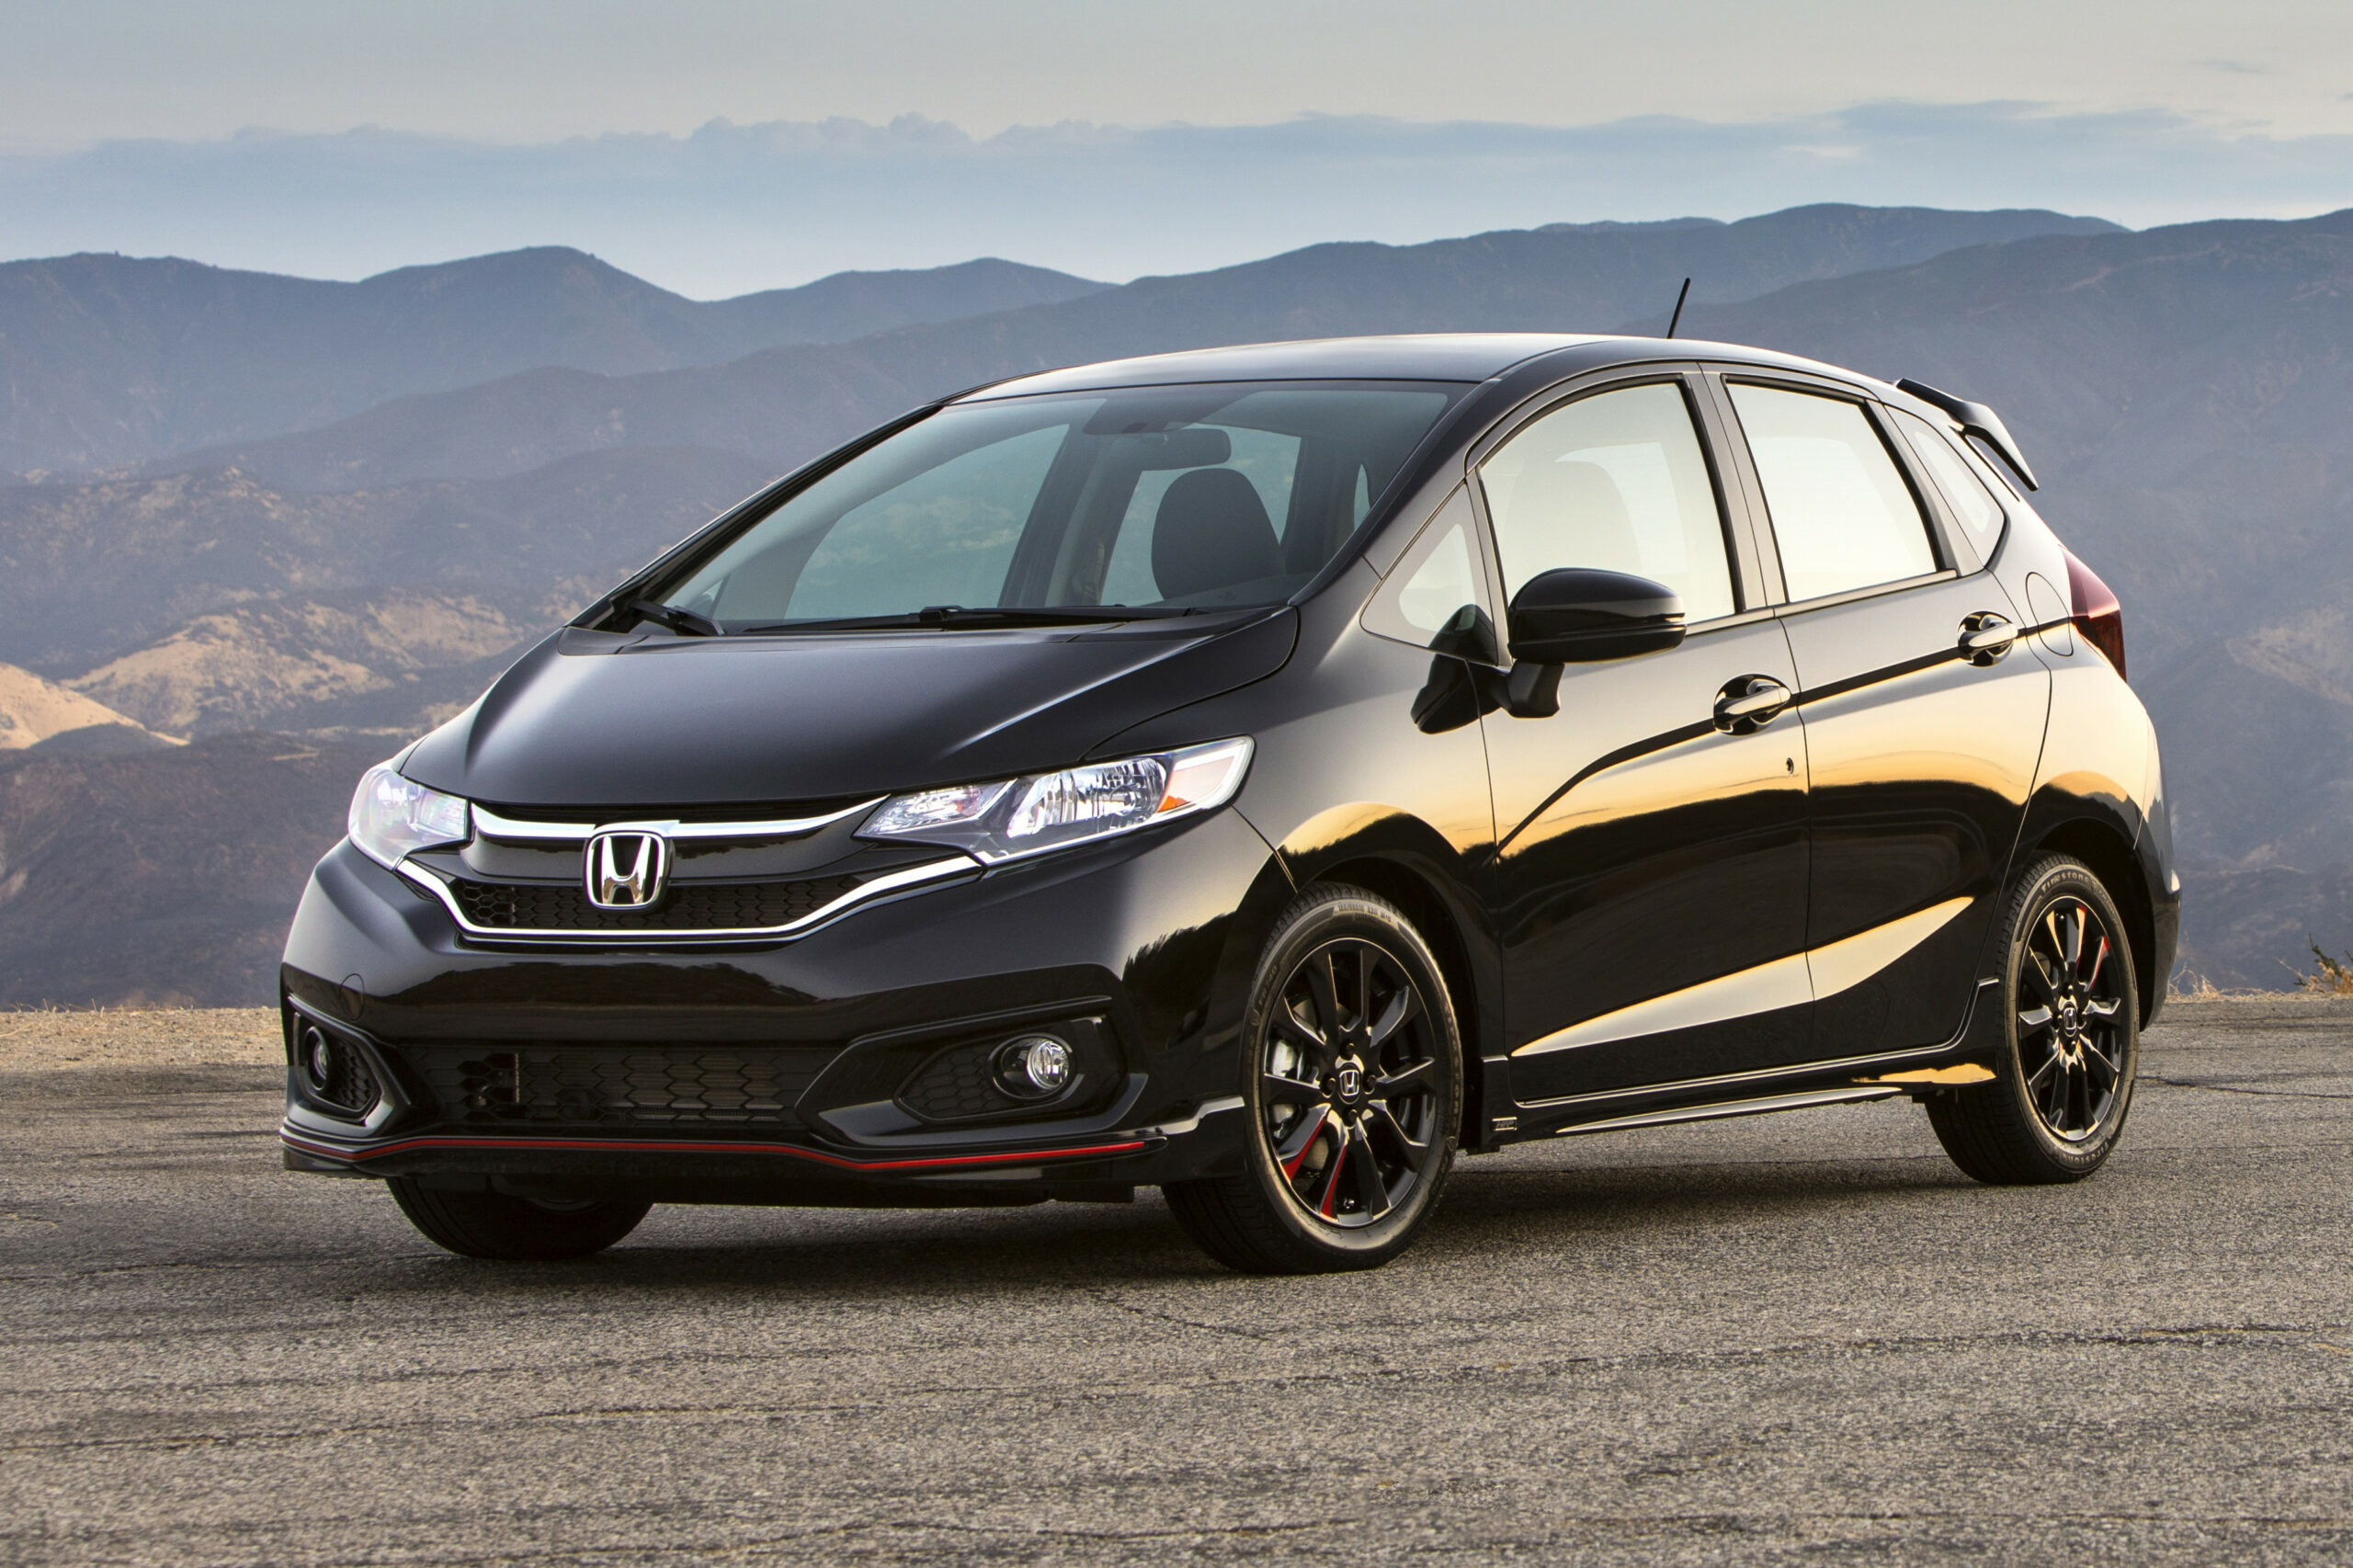 Honda Fit: Which Should You Buy, 7 or 7? | News | Cars